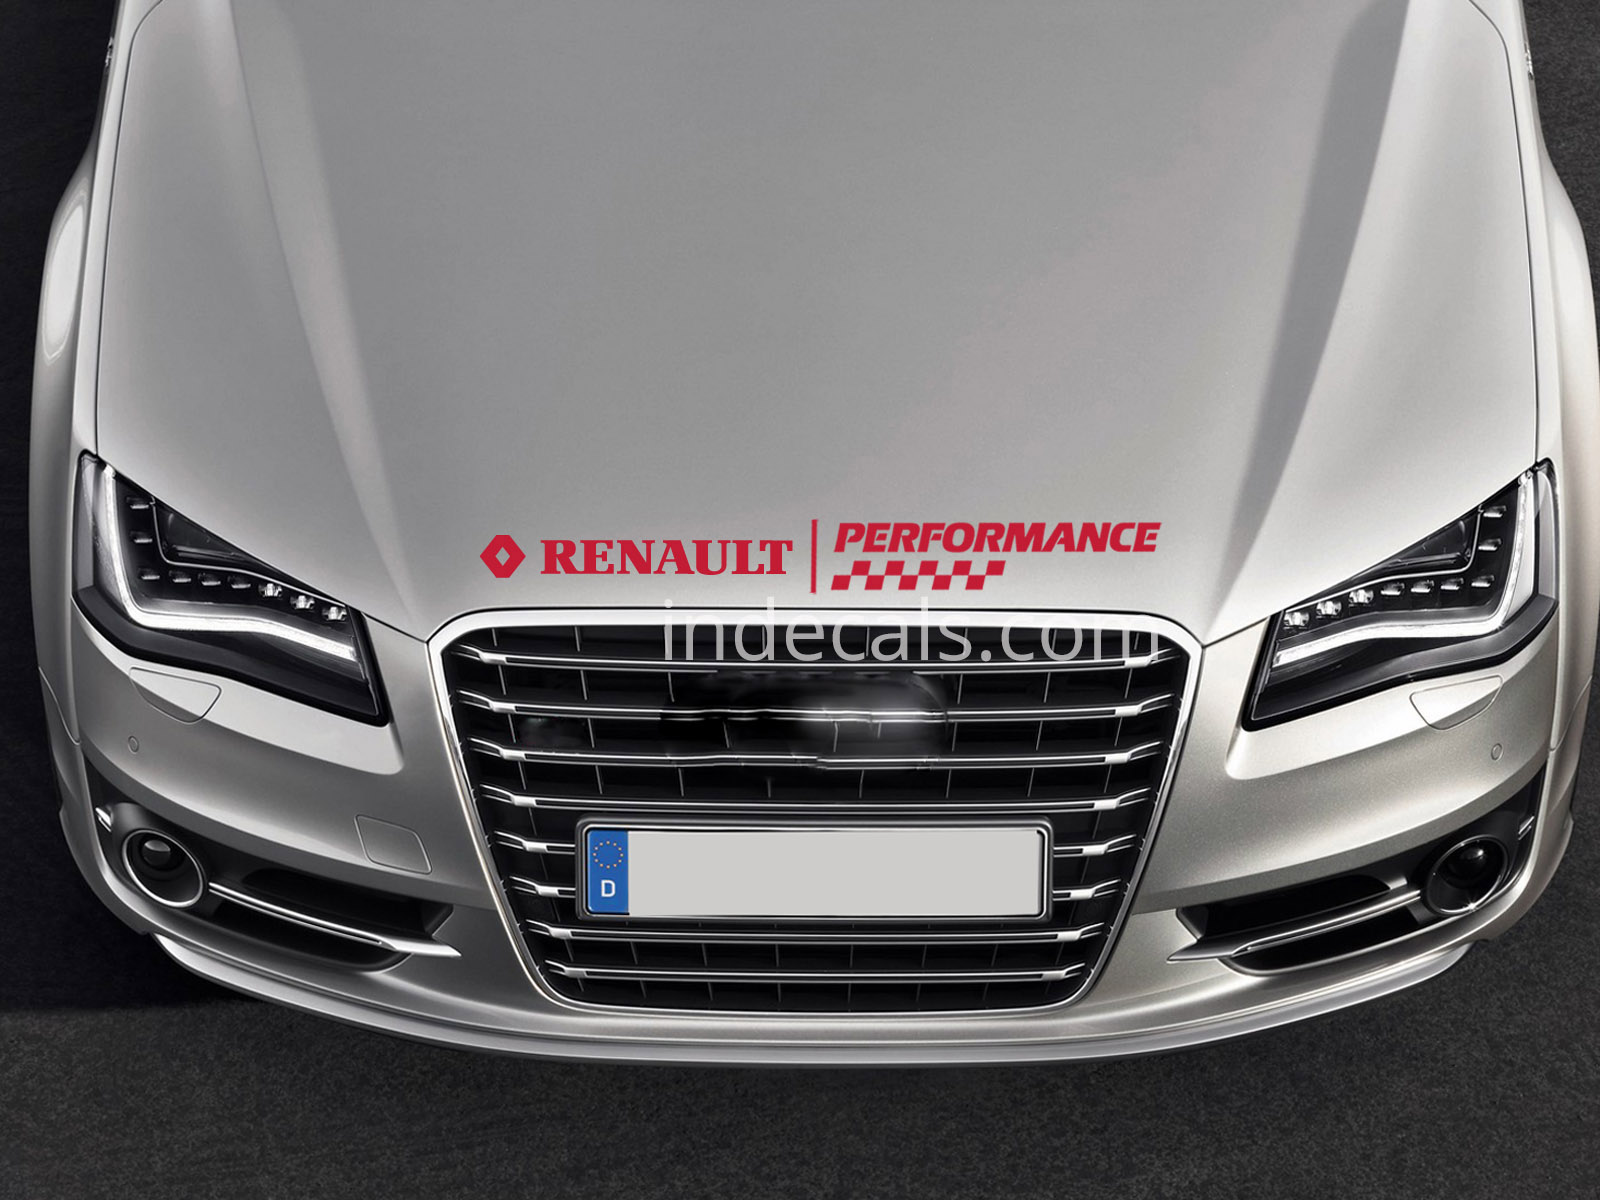 1 x Renault Performance Sticker for Bonnet - Red